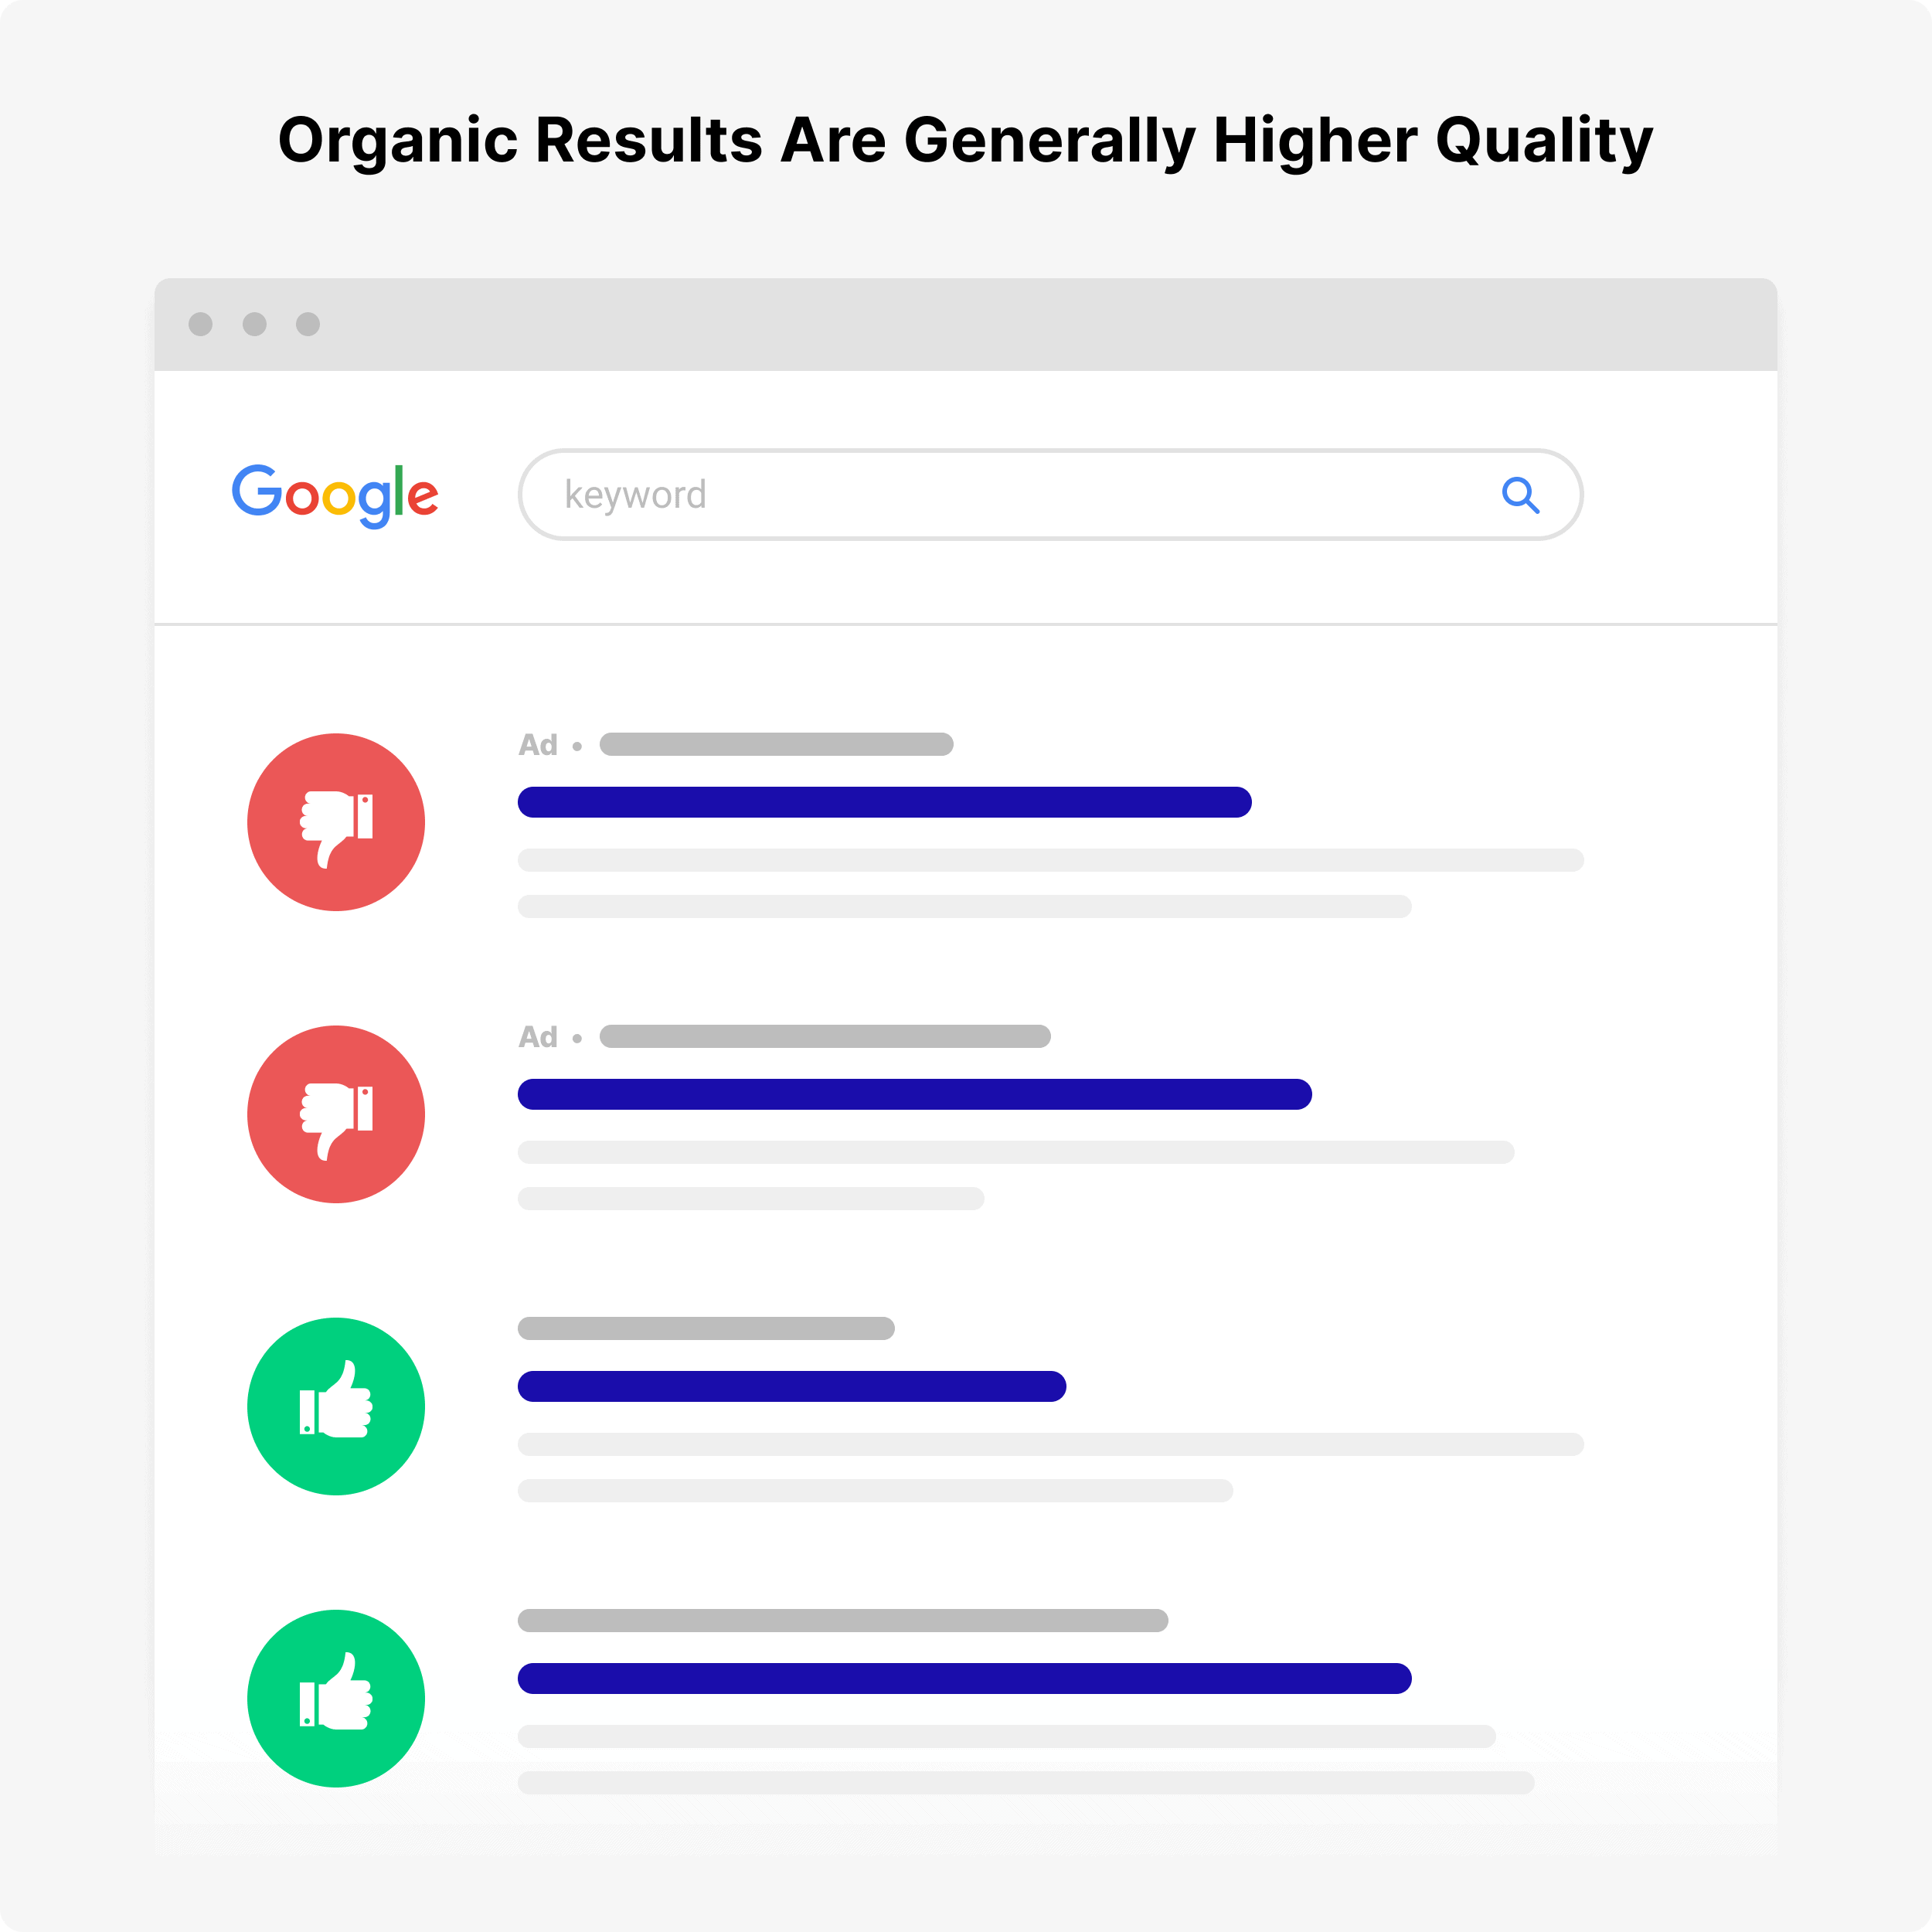 Organic results are higher quality